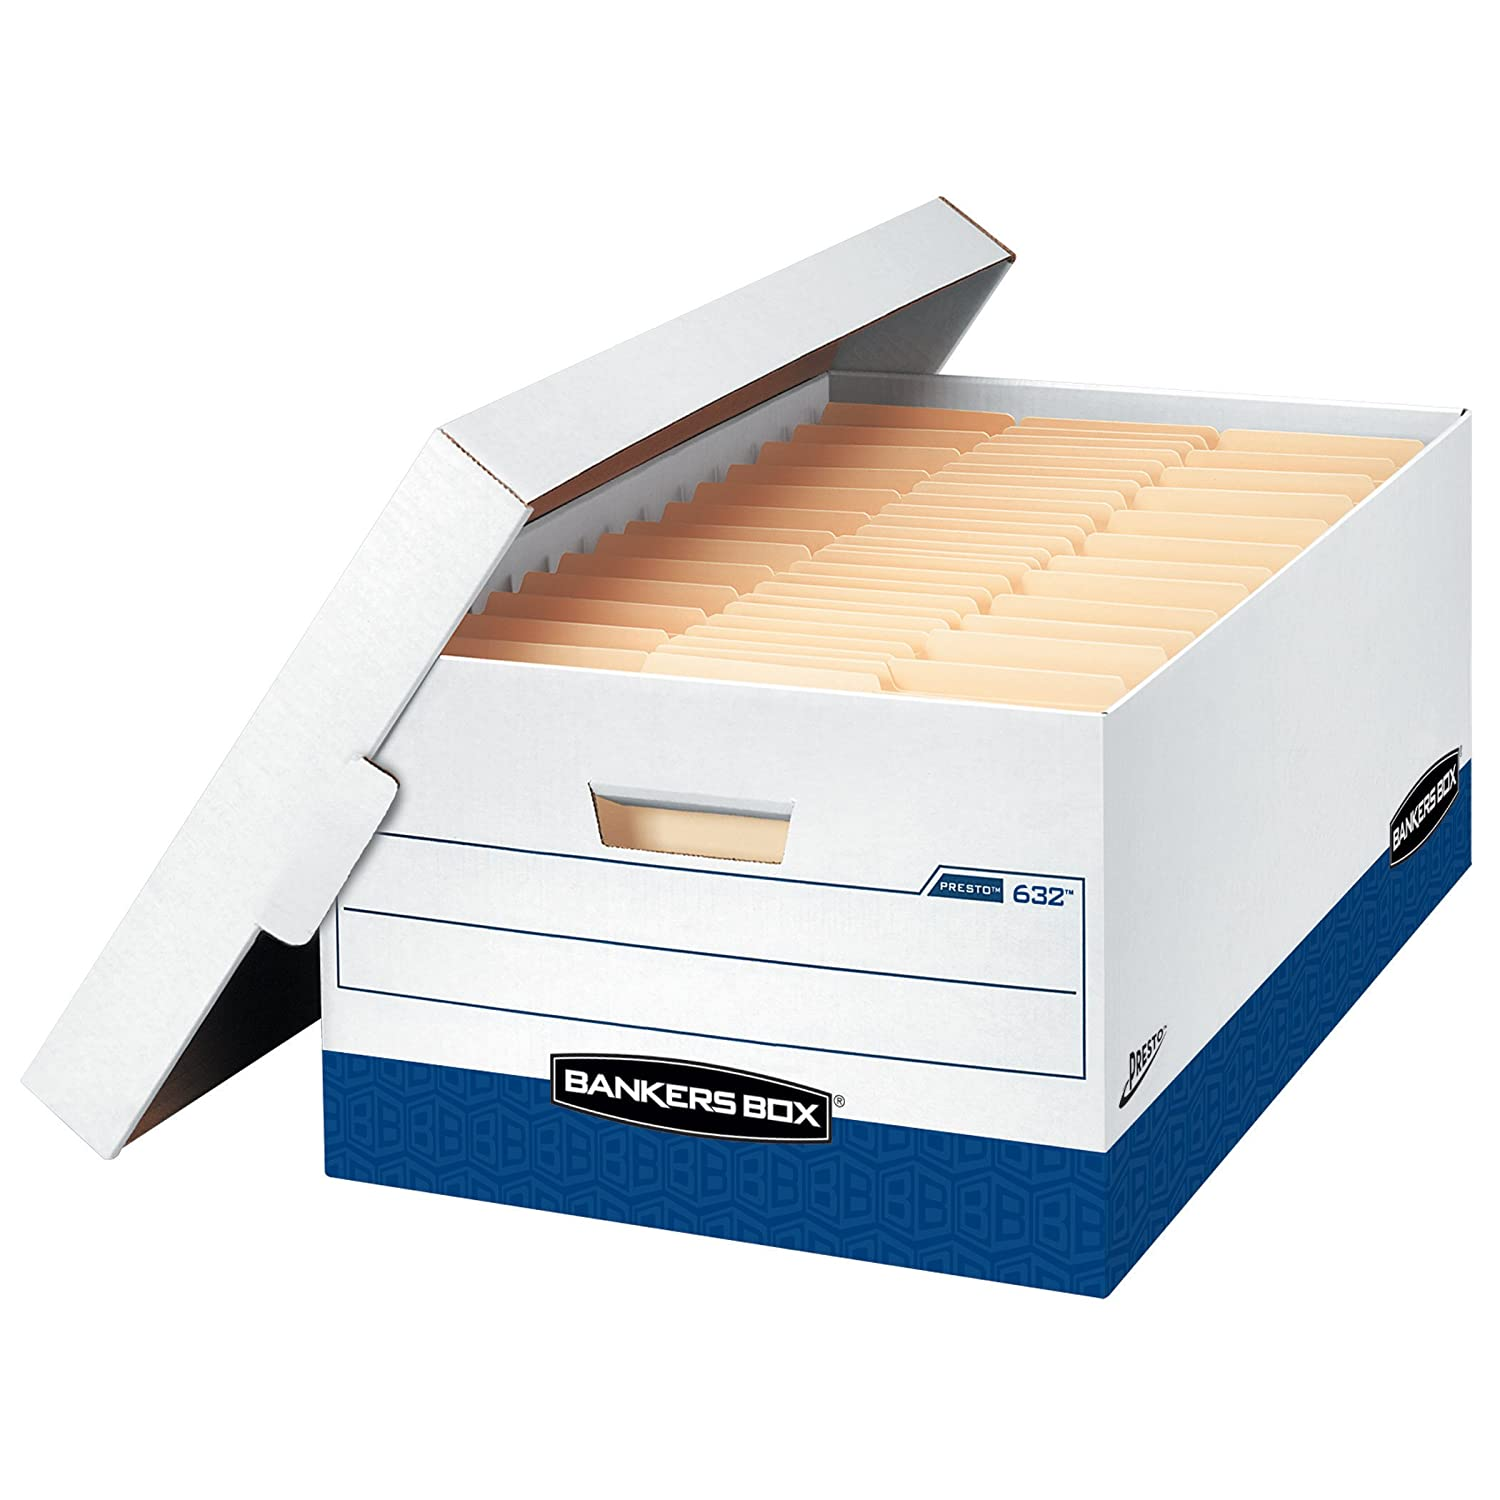 Bankers Box Presto Heavy-Duty Storage Boxes 12 Pack 0063201 Legal